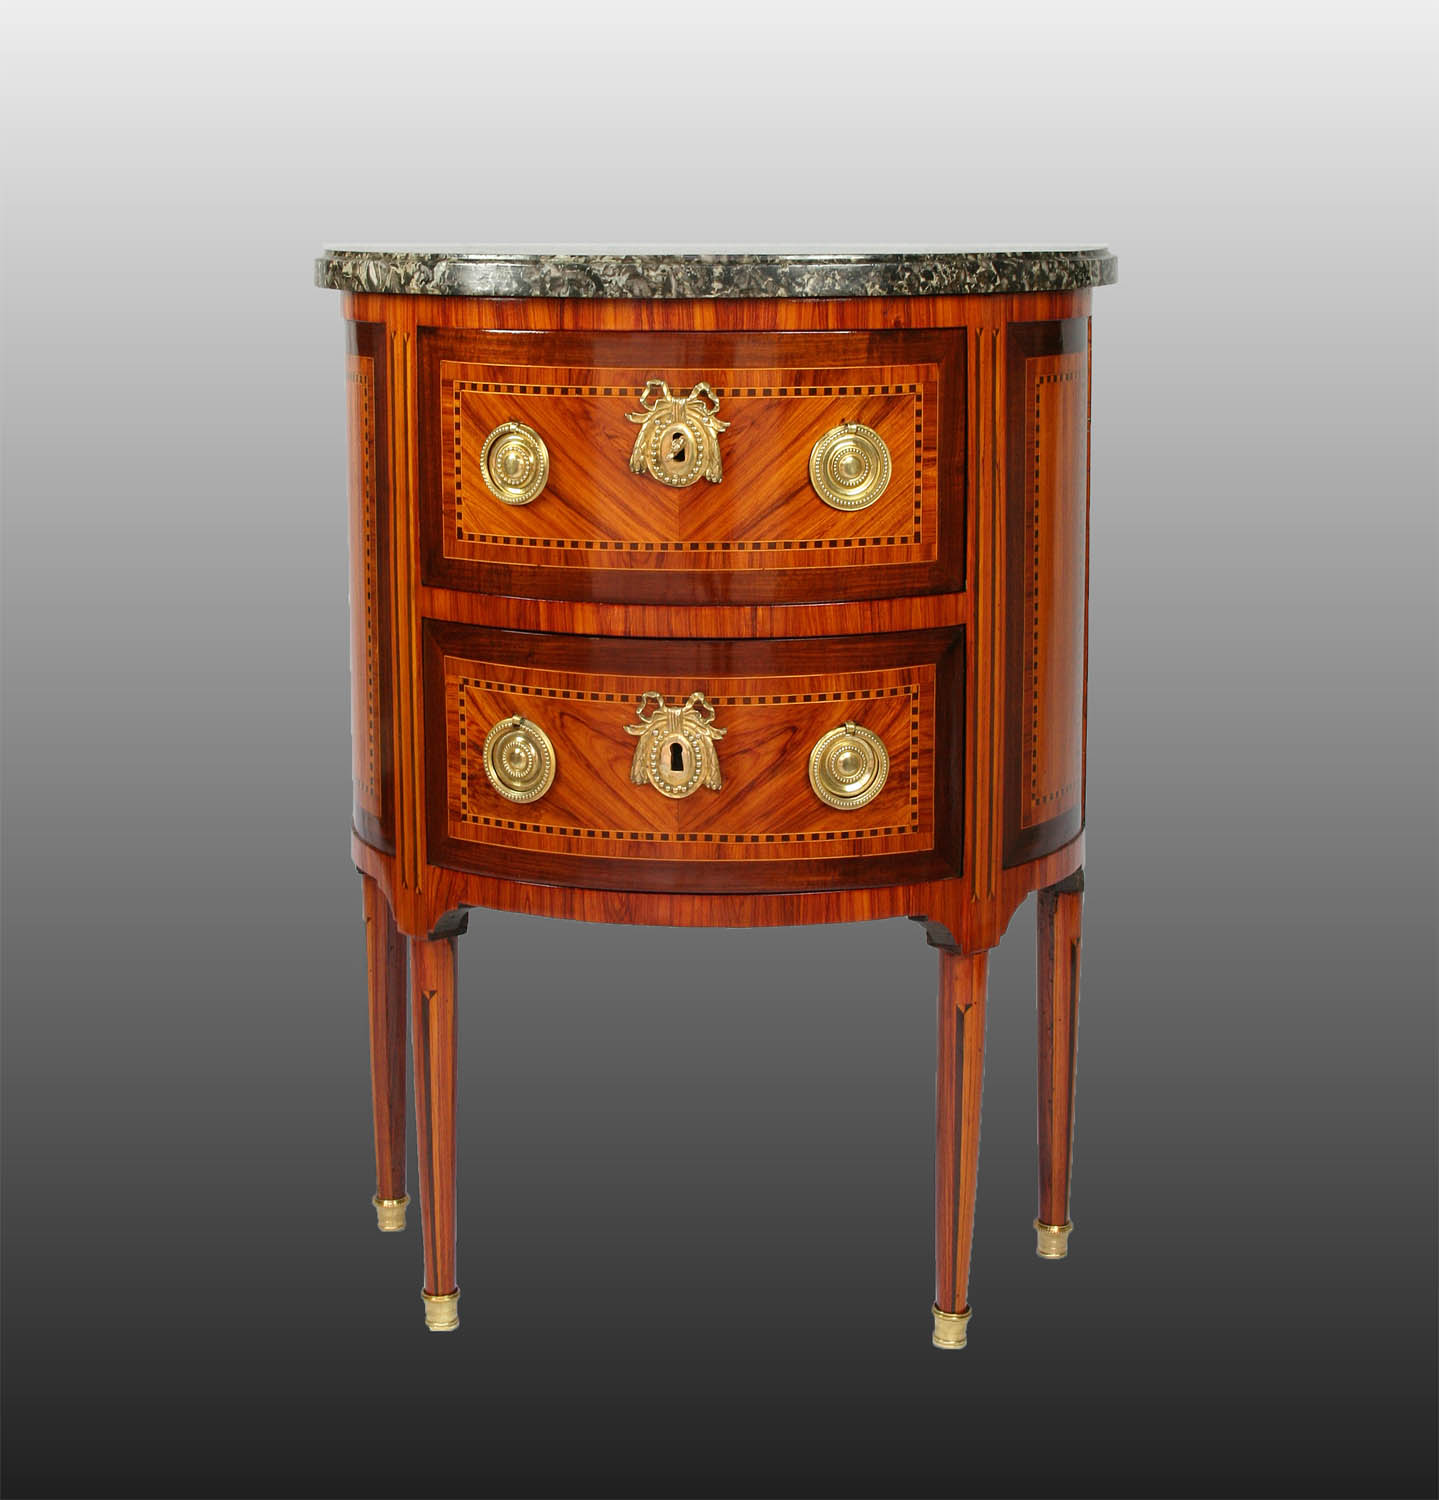 Commode d��poque Louis XV, Estampill�e J.F GRIFFET